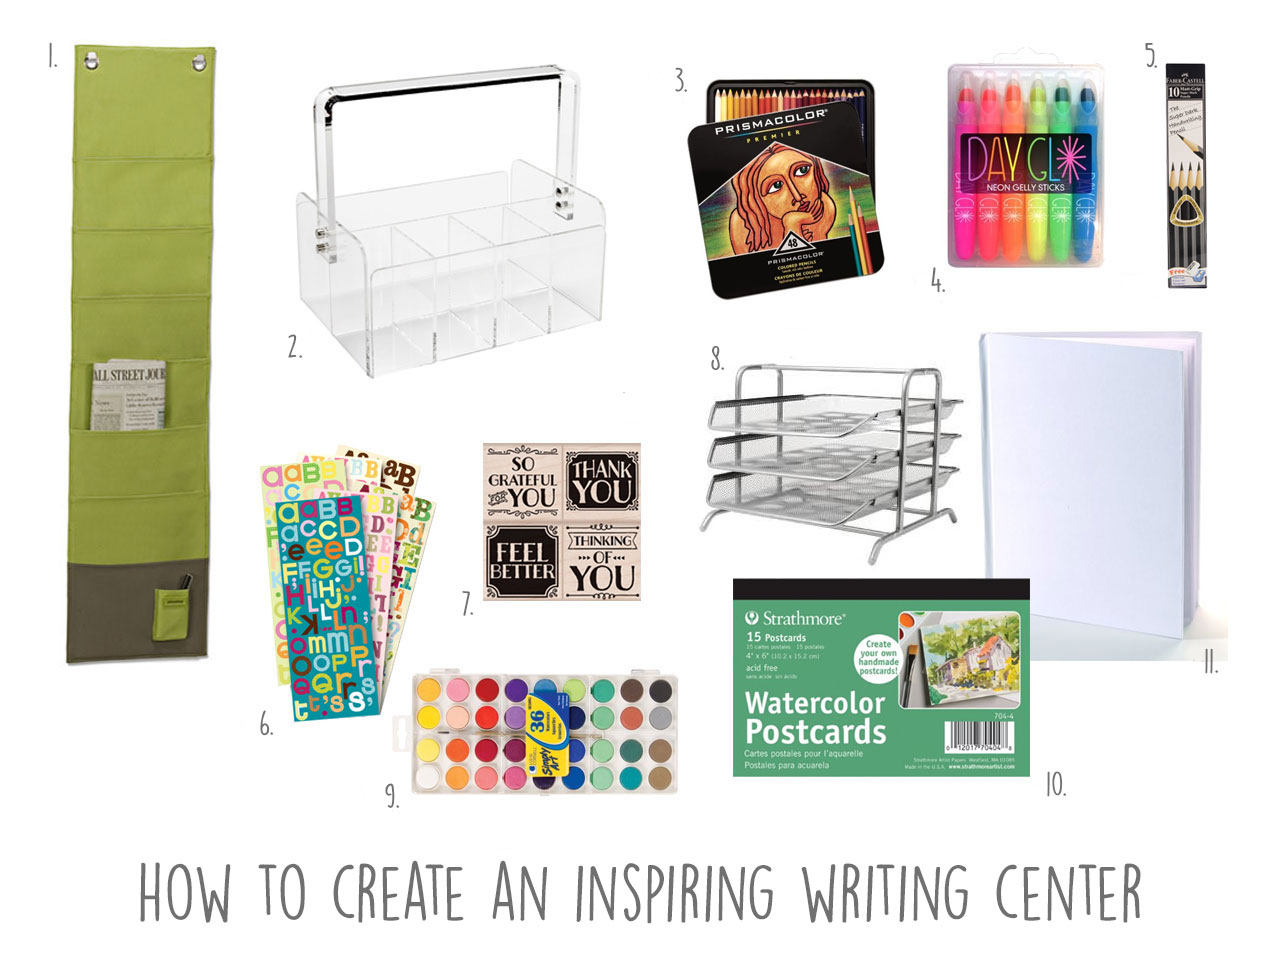 How to Create an Inspiring Writing Center